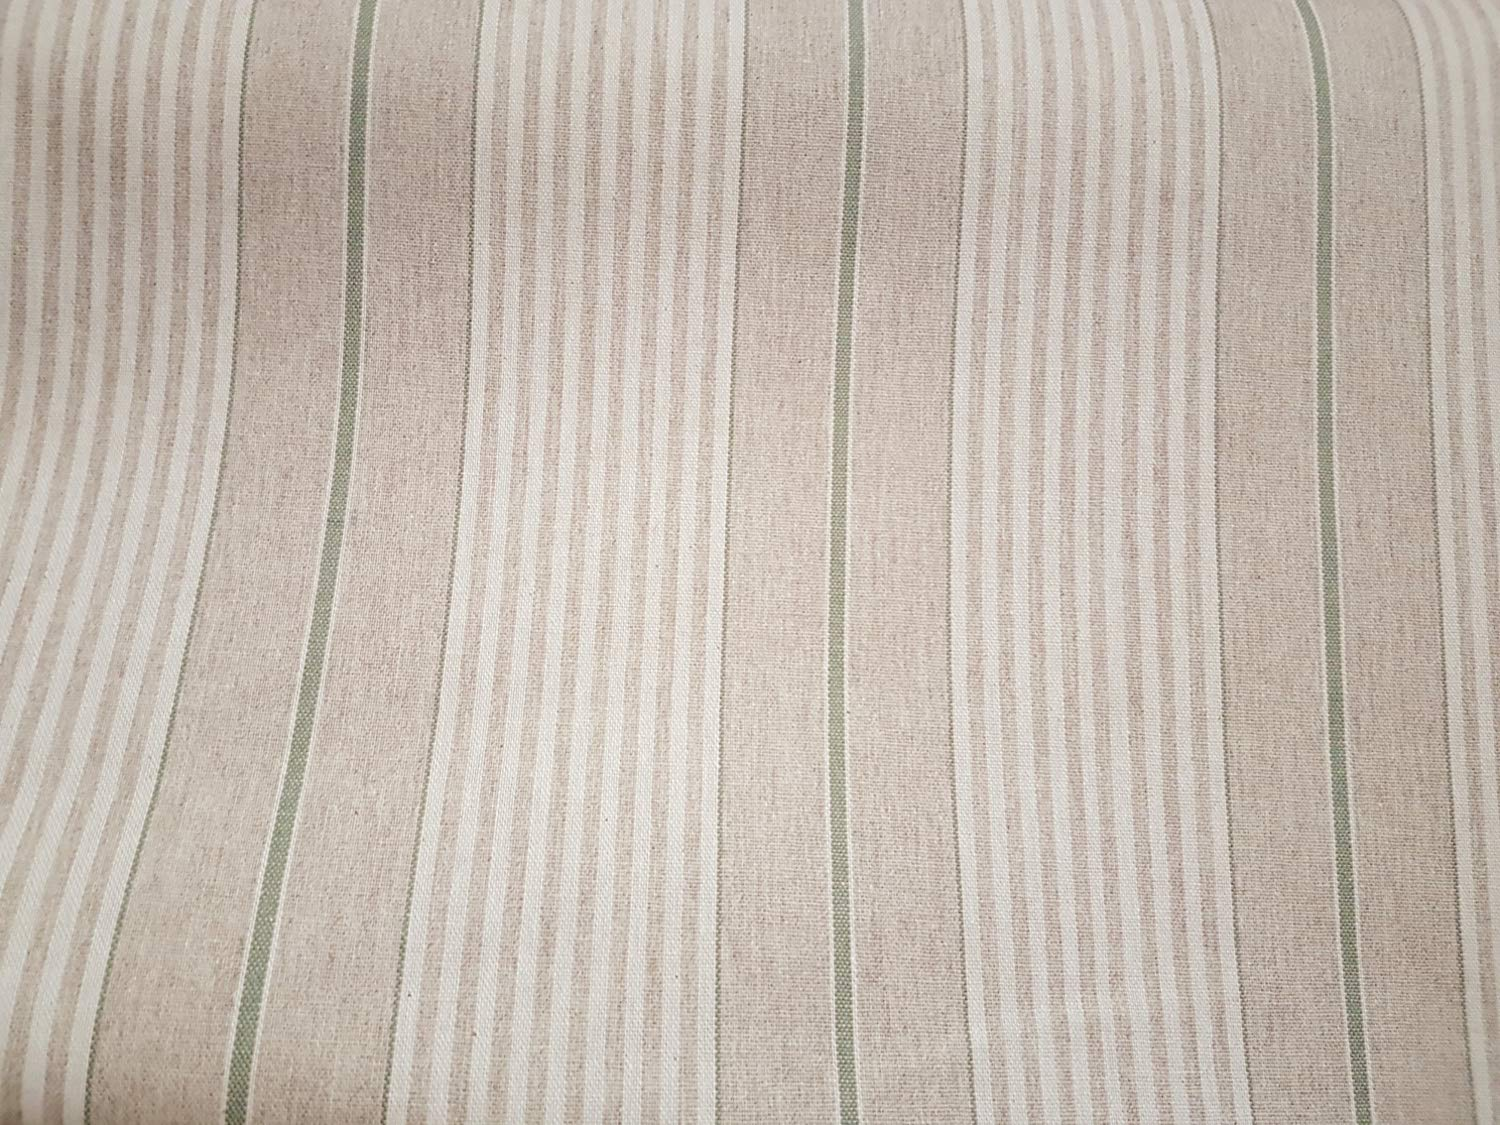 Wipe Clean Latte Beige White Mint Polycotton Table Cloth Acrylic Coated Tablecloth Harbour Stripe Green 3 Metres 300cm x 140cm Linen Look Stripes Lines French Ticking Effect